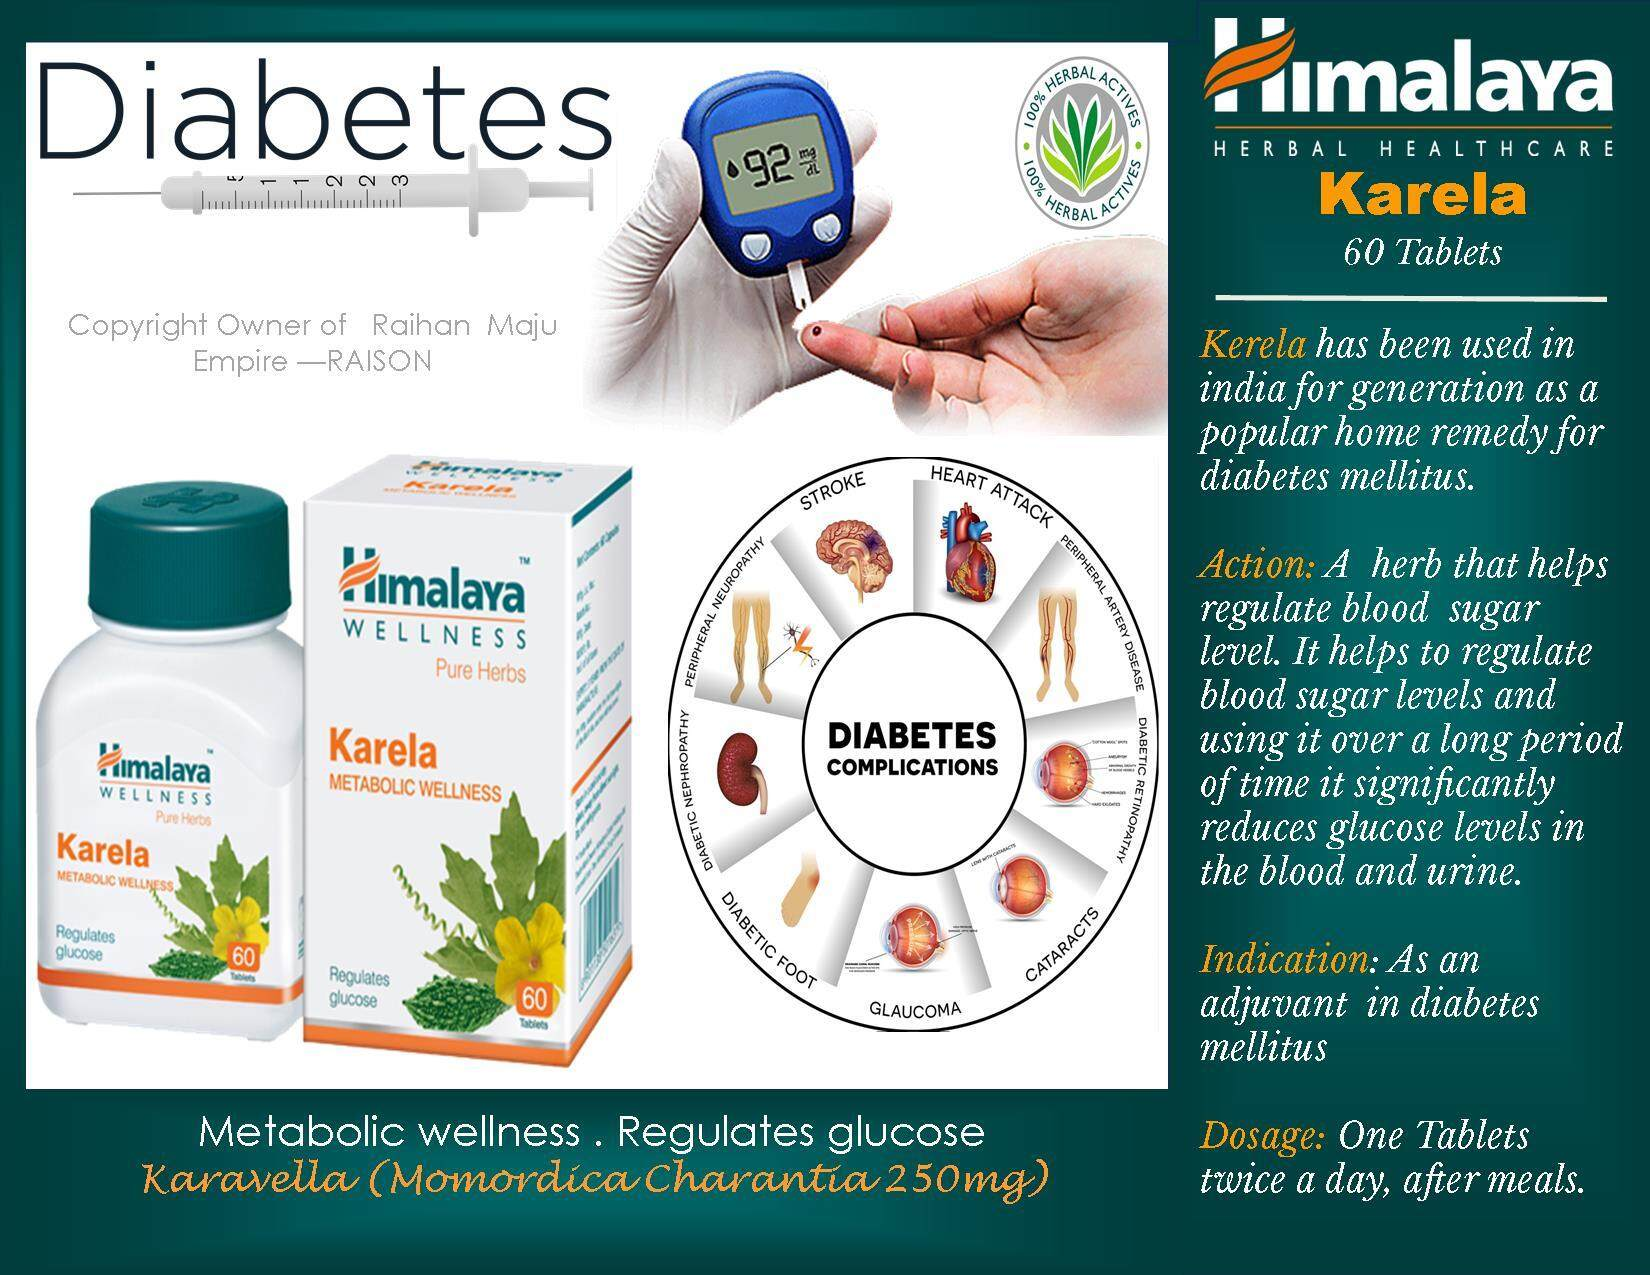 HIMALAYA HERBAL Food Supplements - Multivitamins price in Malaysia